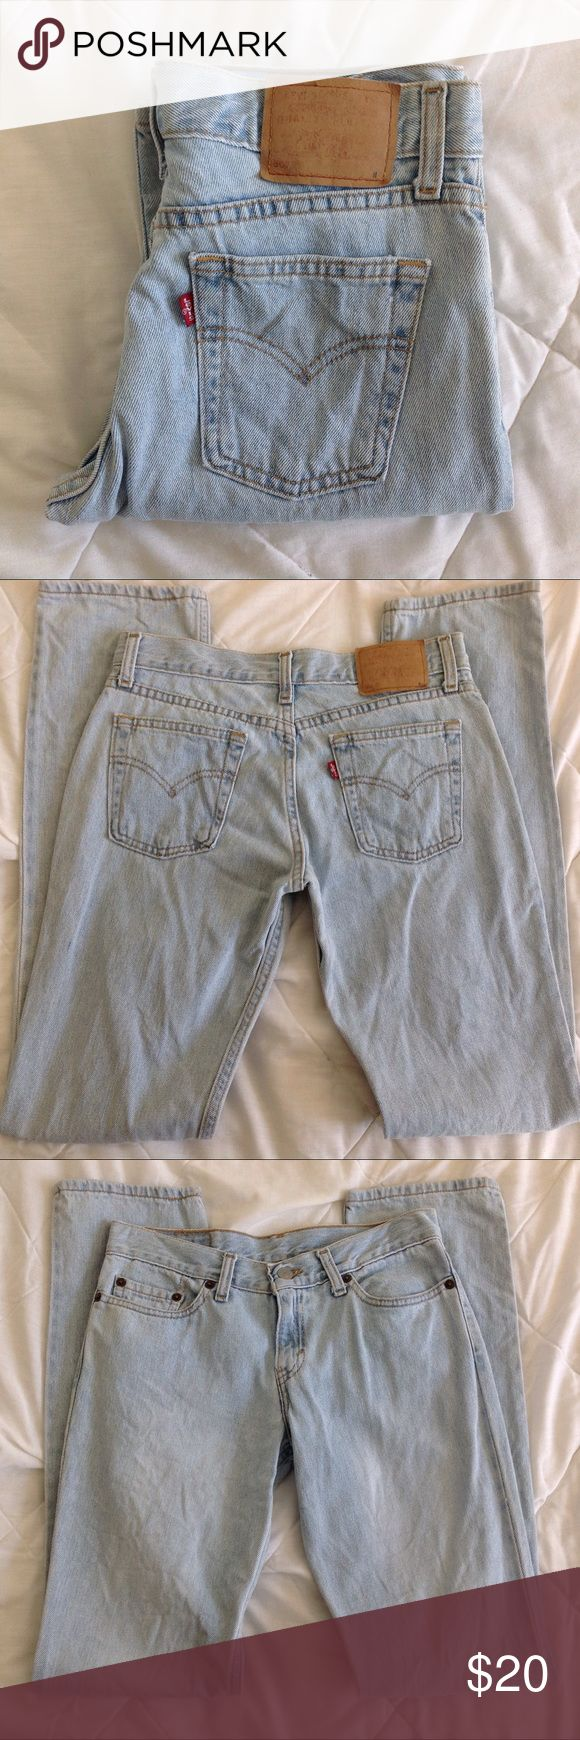 """1990s LEVIS 507 straight leg jeans I believe these are from the 90s.  Heavy 100% cotton light wash straight leg jeans.  There is a tiny hole near the seam on the left thigh, otherwise in good condition.  Tag says 3 jr M.  I measure them at approx 28"""" at the waist, 8.5"""" rise, 18"""" at the hip, inseam 31"""" and ankles about 13.5"""" around.  Color may look different on your screen. Vintage Jeans Straight Leg"""